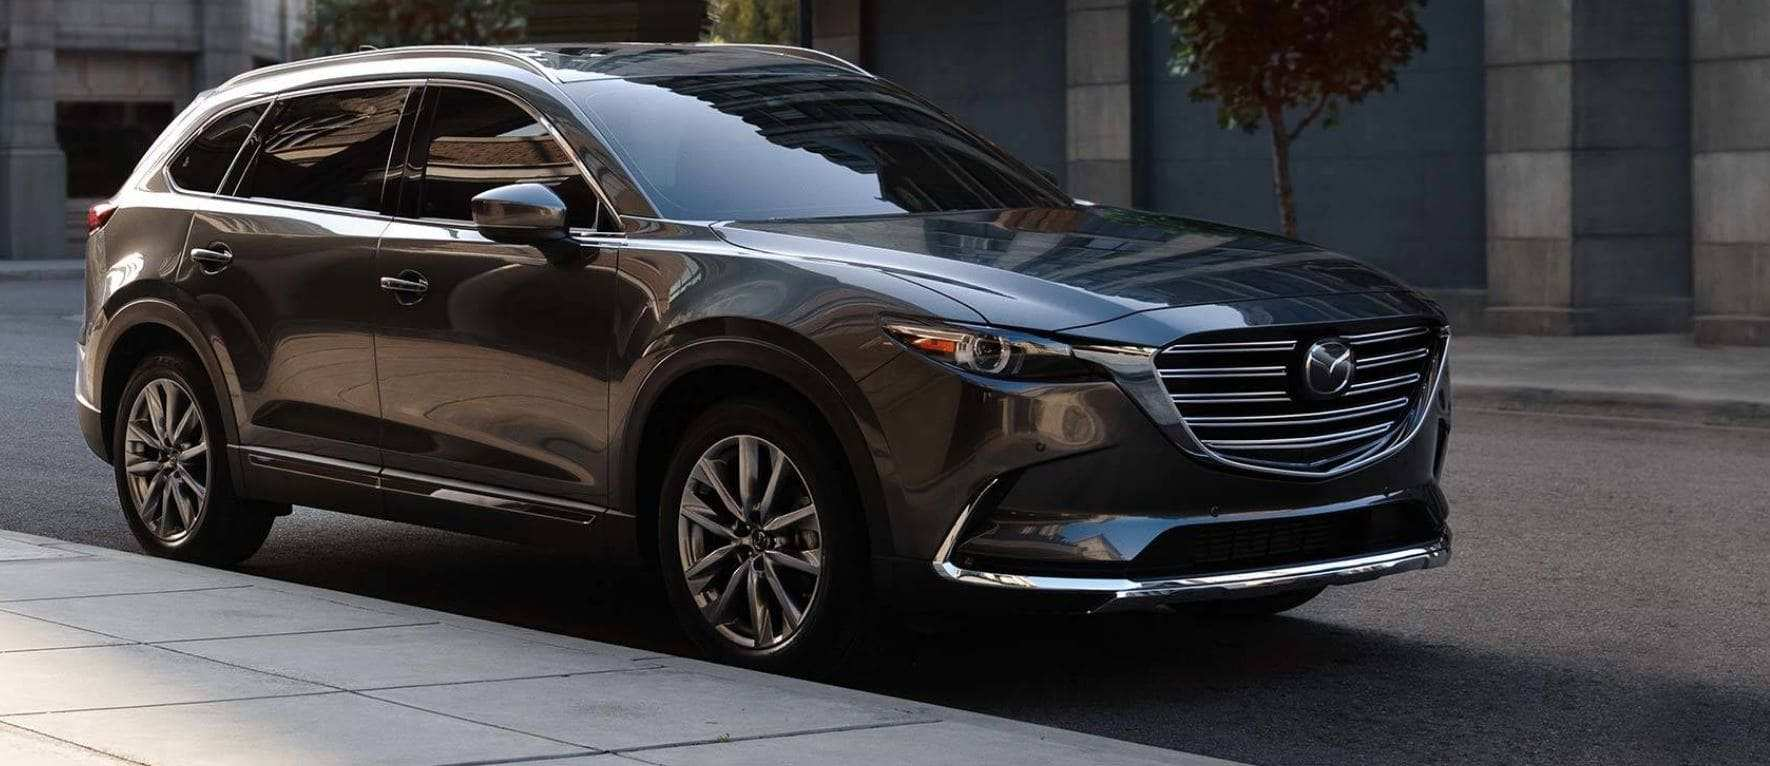 53 All New 2019 Mazda Cx 9 Rumors